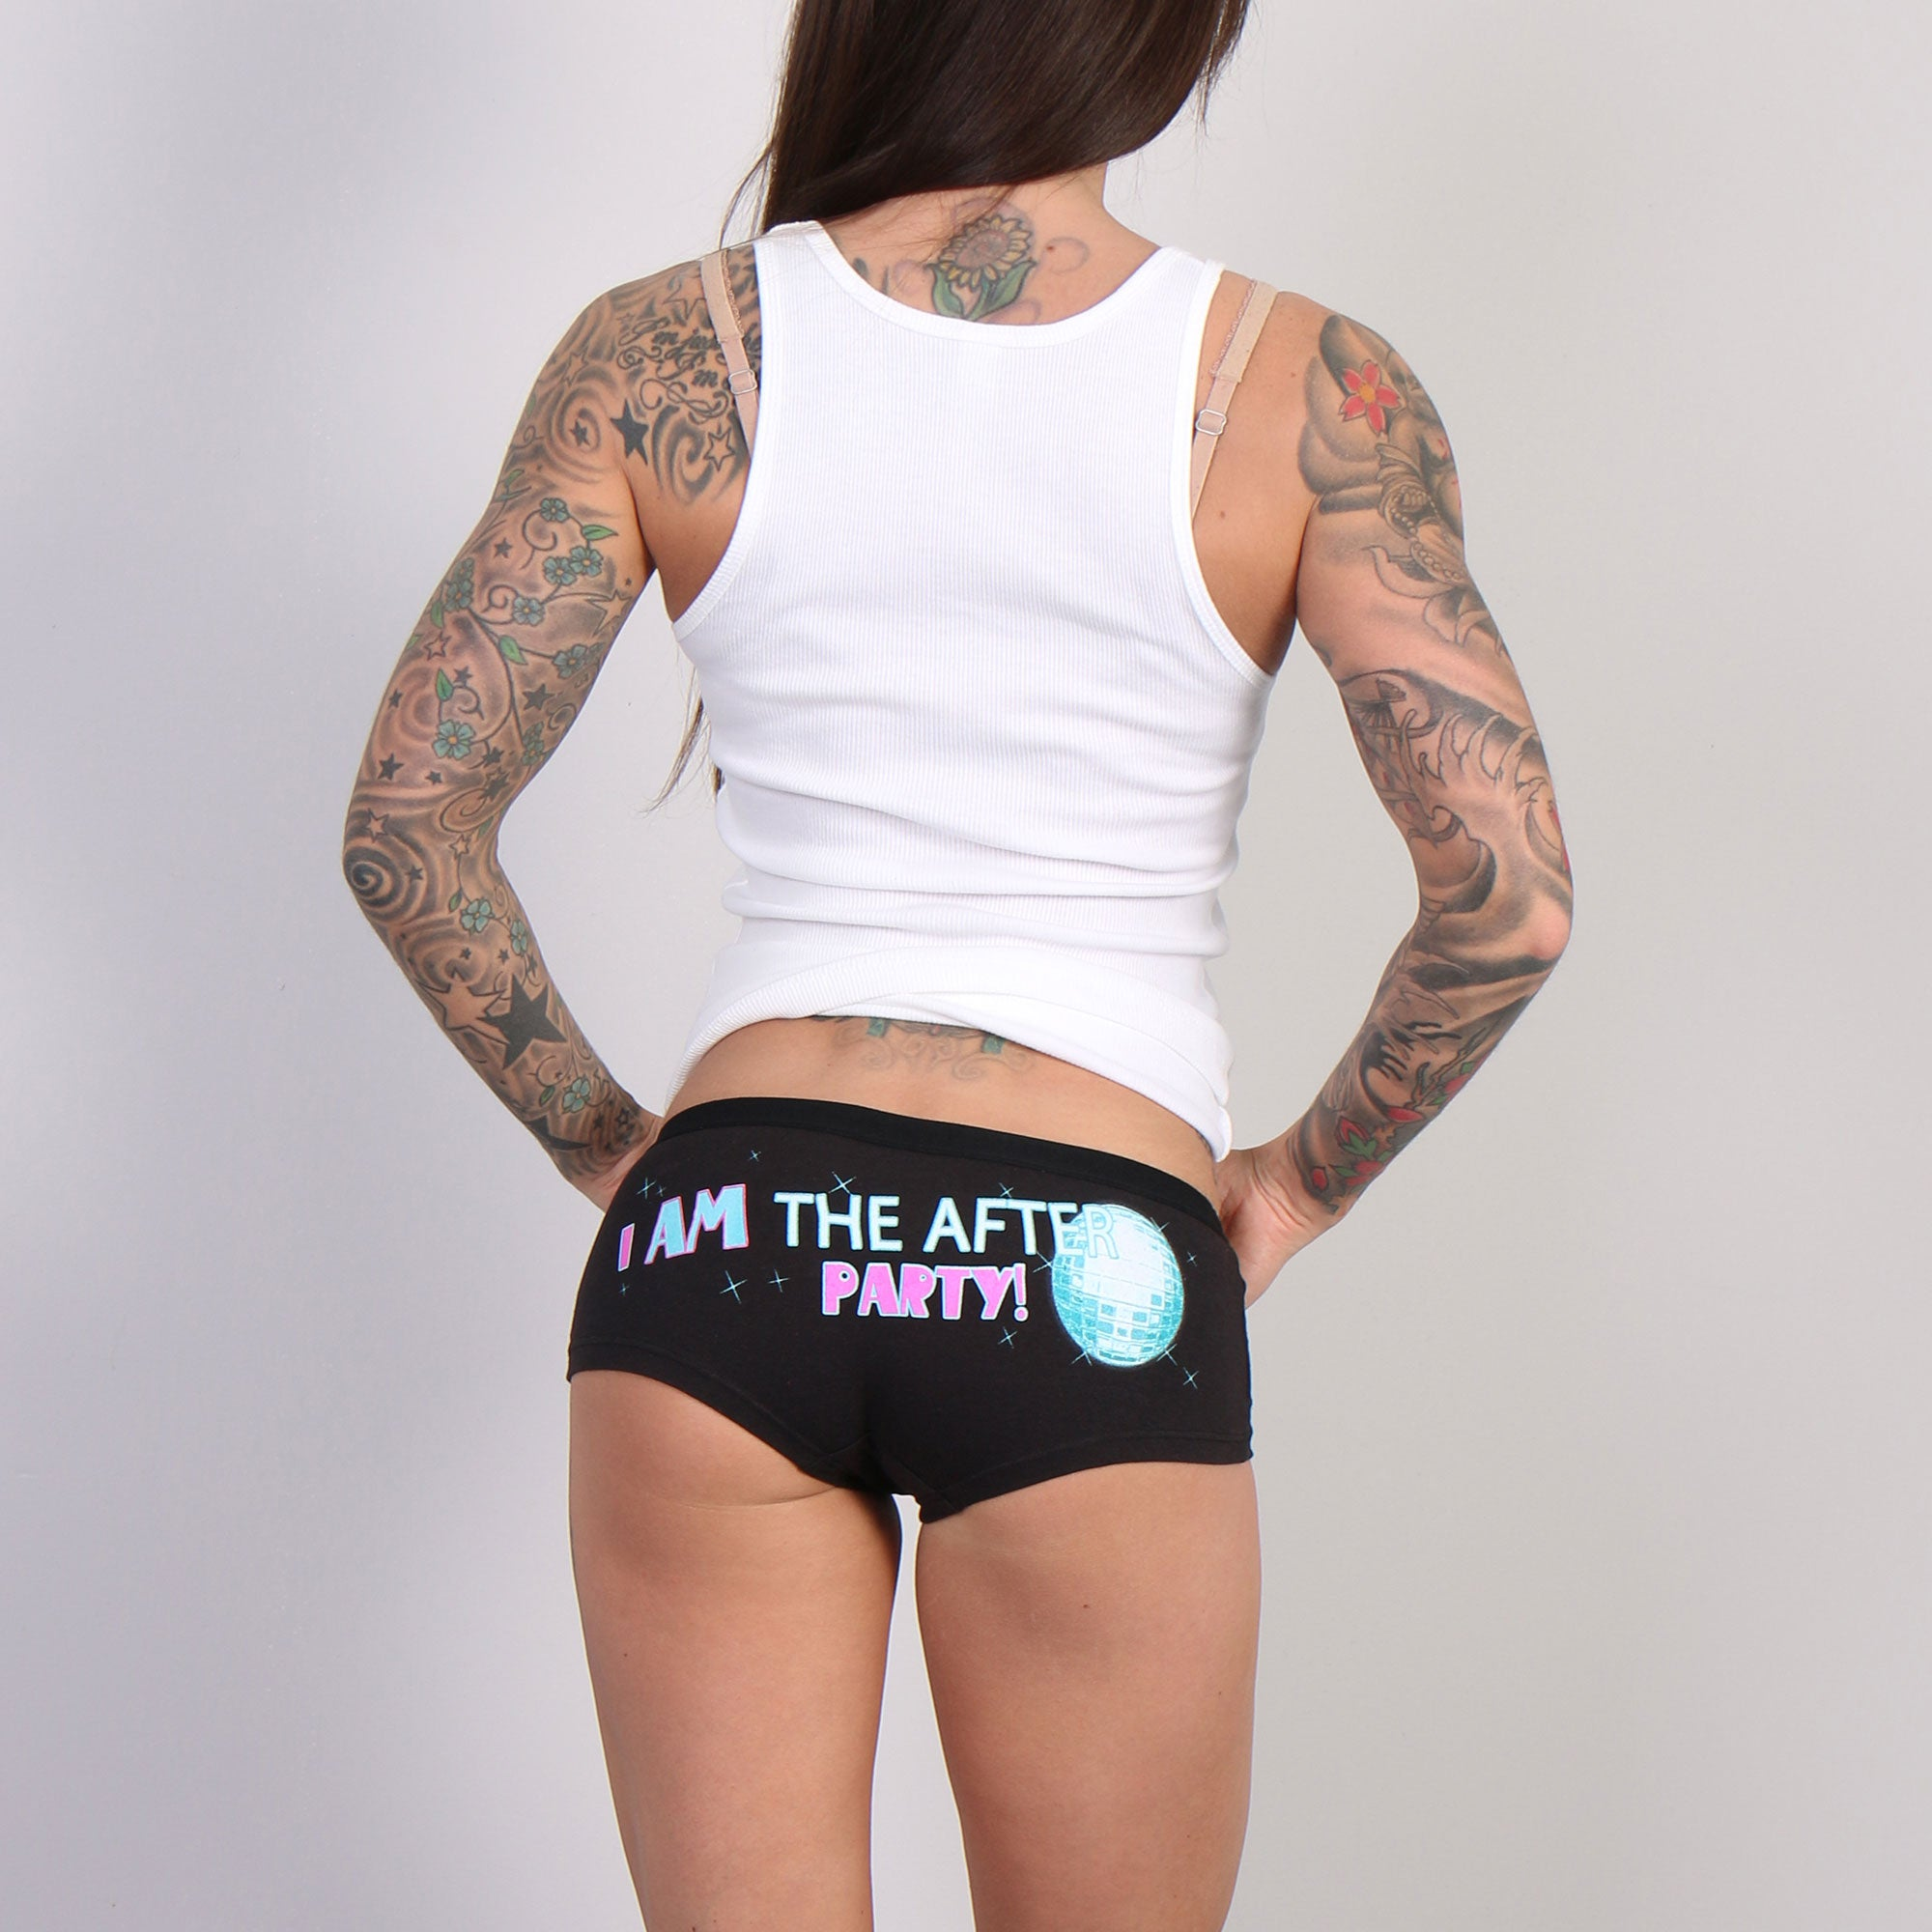 Hot Leathers I Am The After Party Ladies Boy Shorts